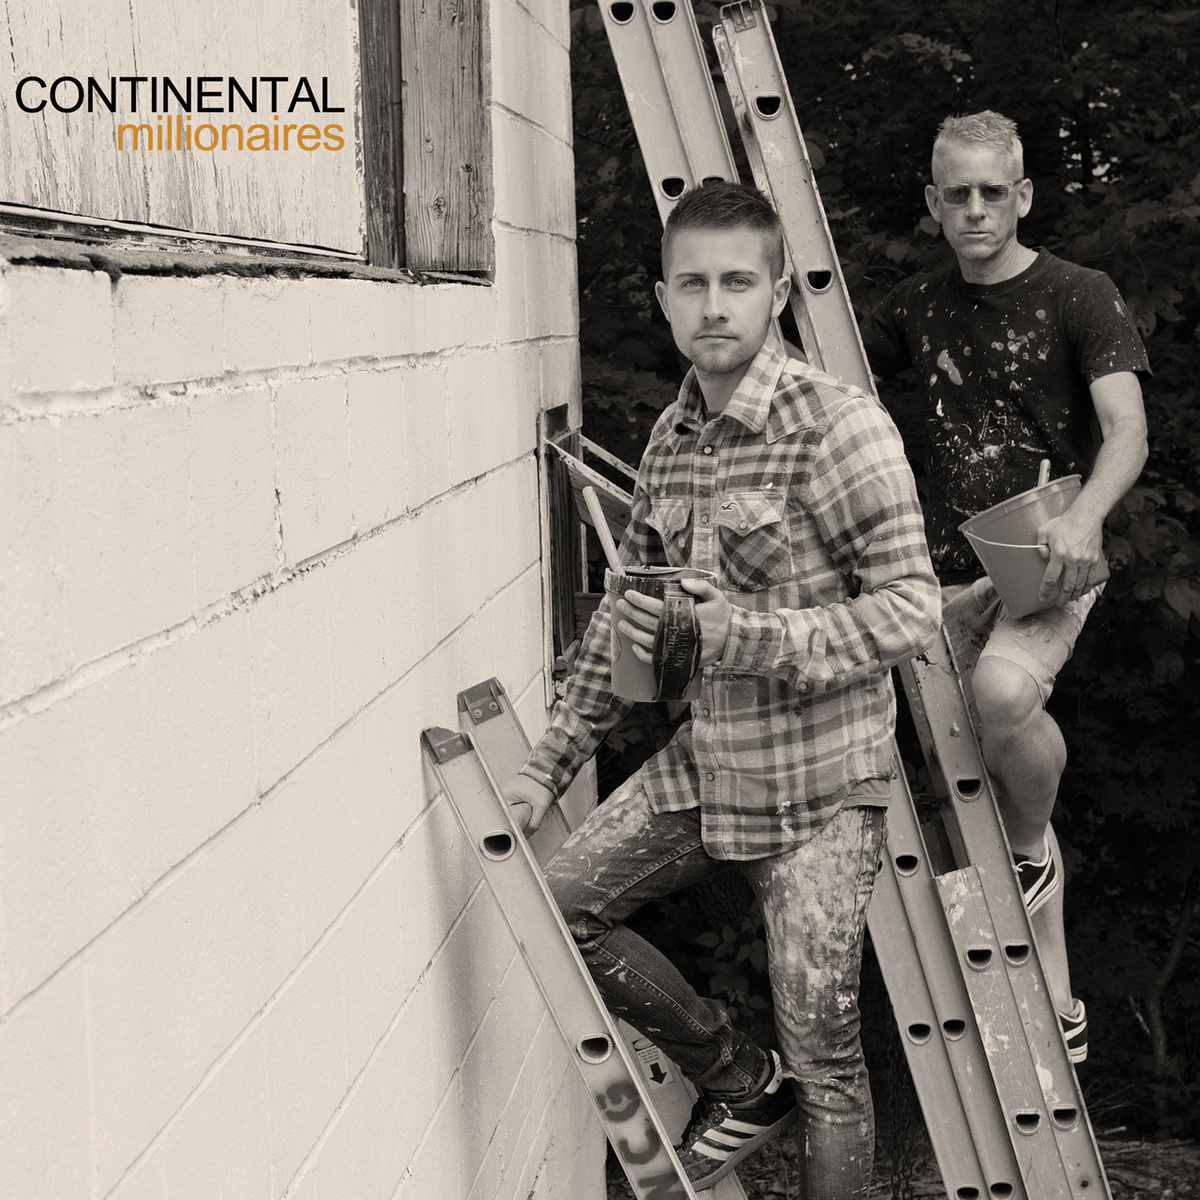 """Continental release new LP """"Millionaires"""" on East Grand Recording Co."""